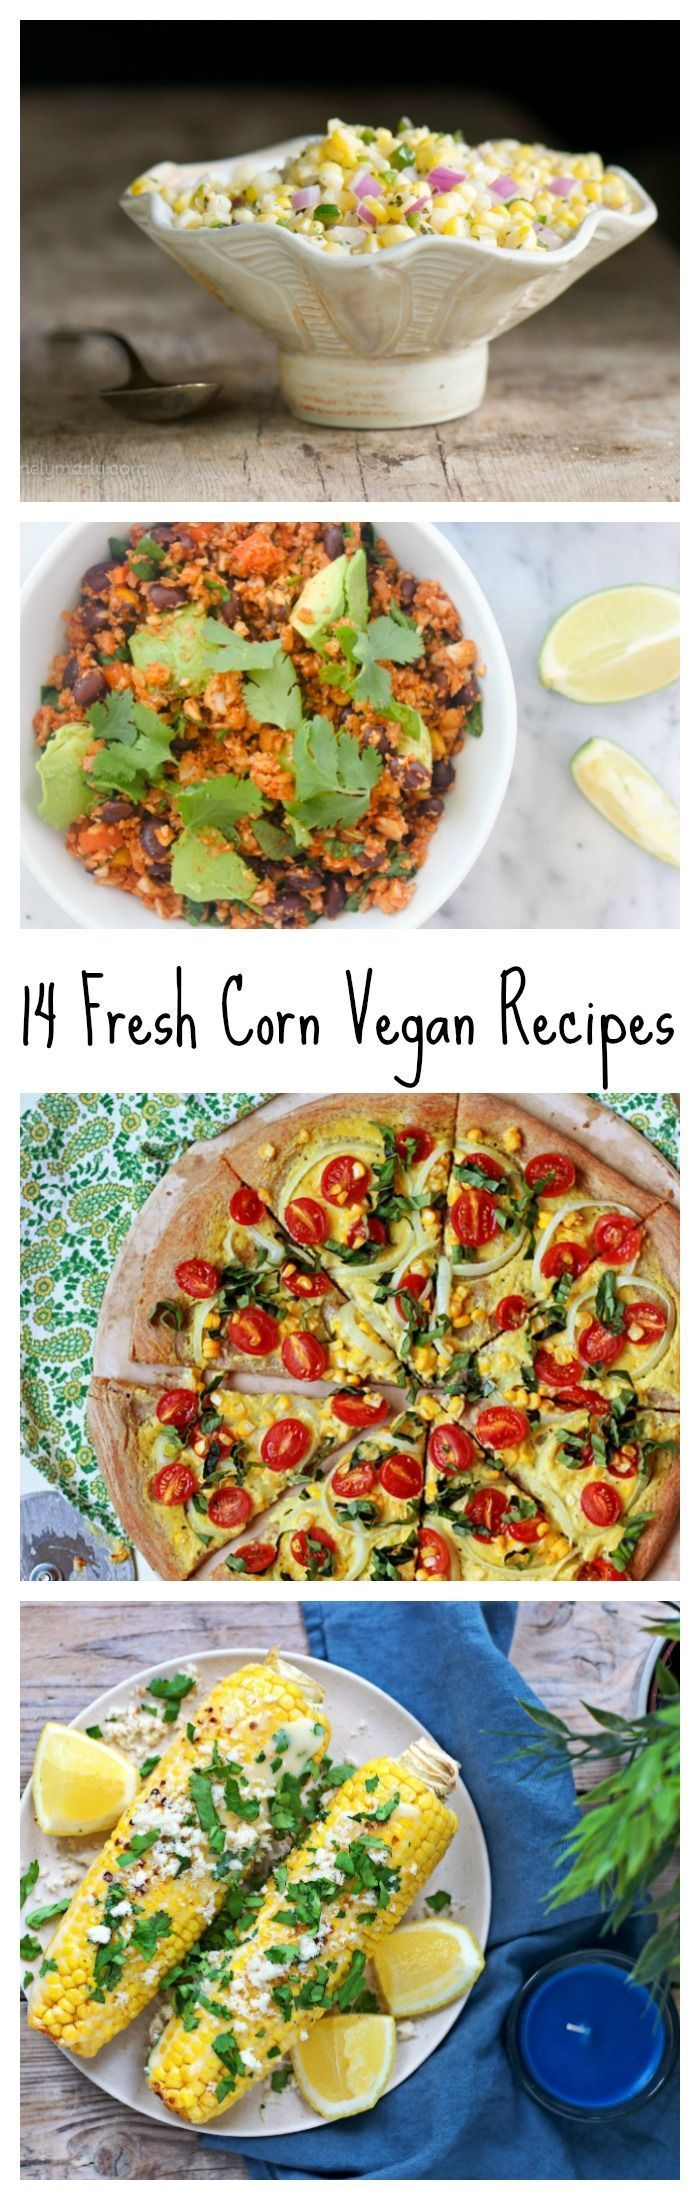 14 Vegan Recipes to Turn Fresh Corn into Amazing Summer Meals! You will want to…